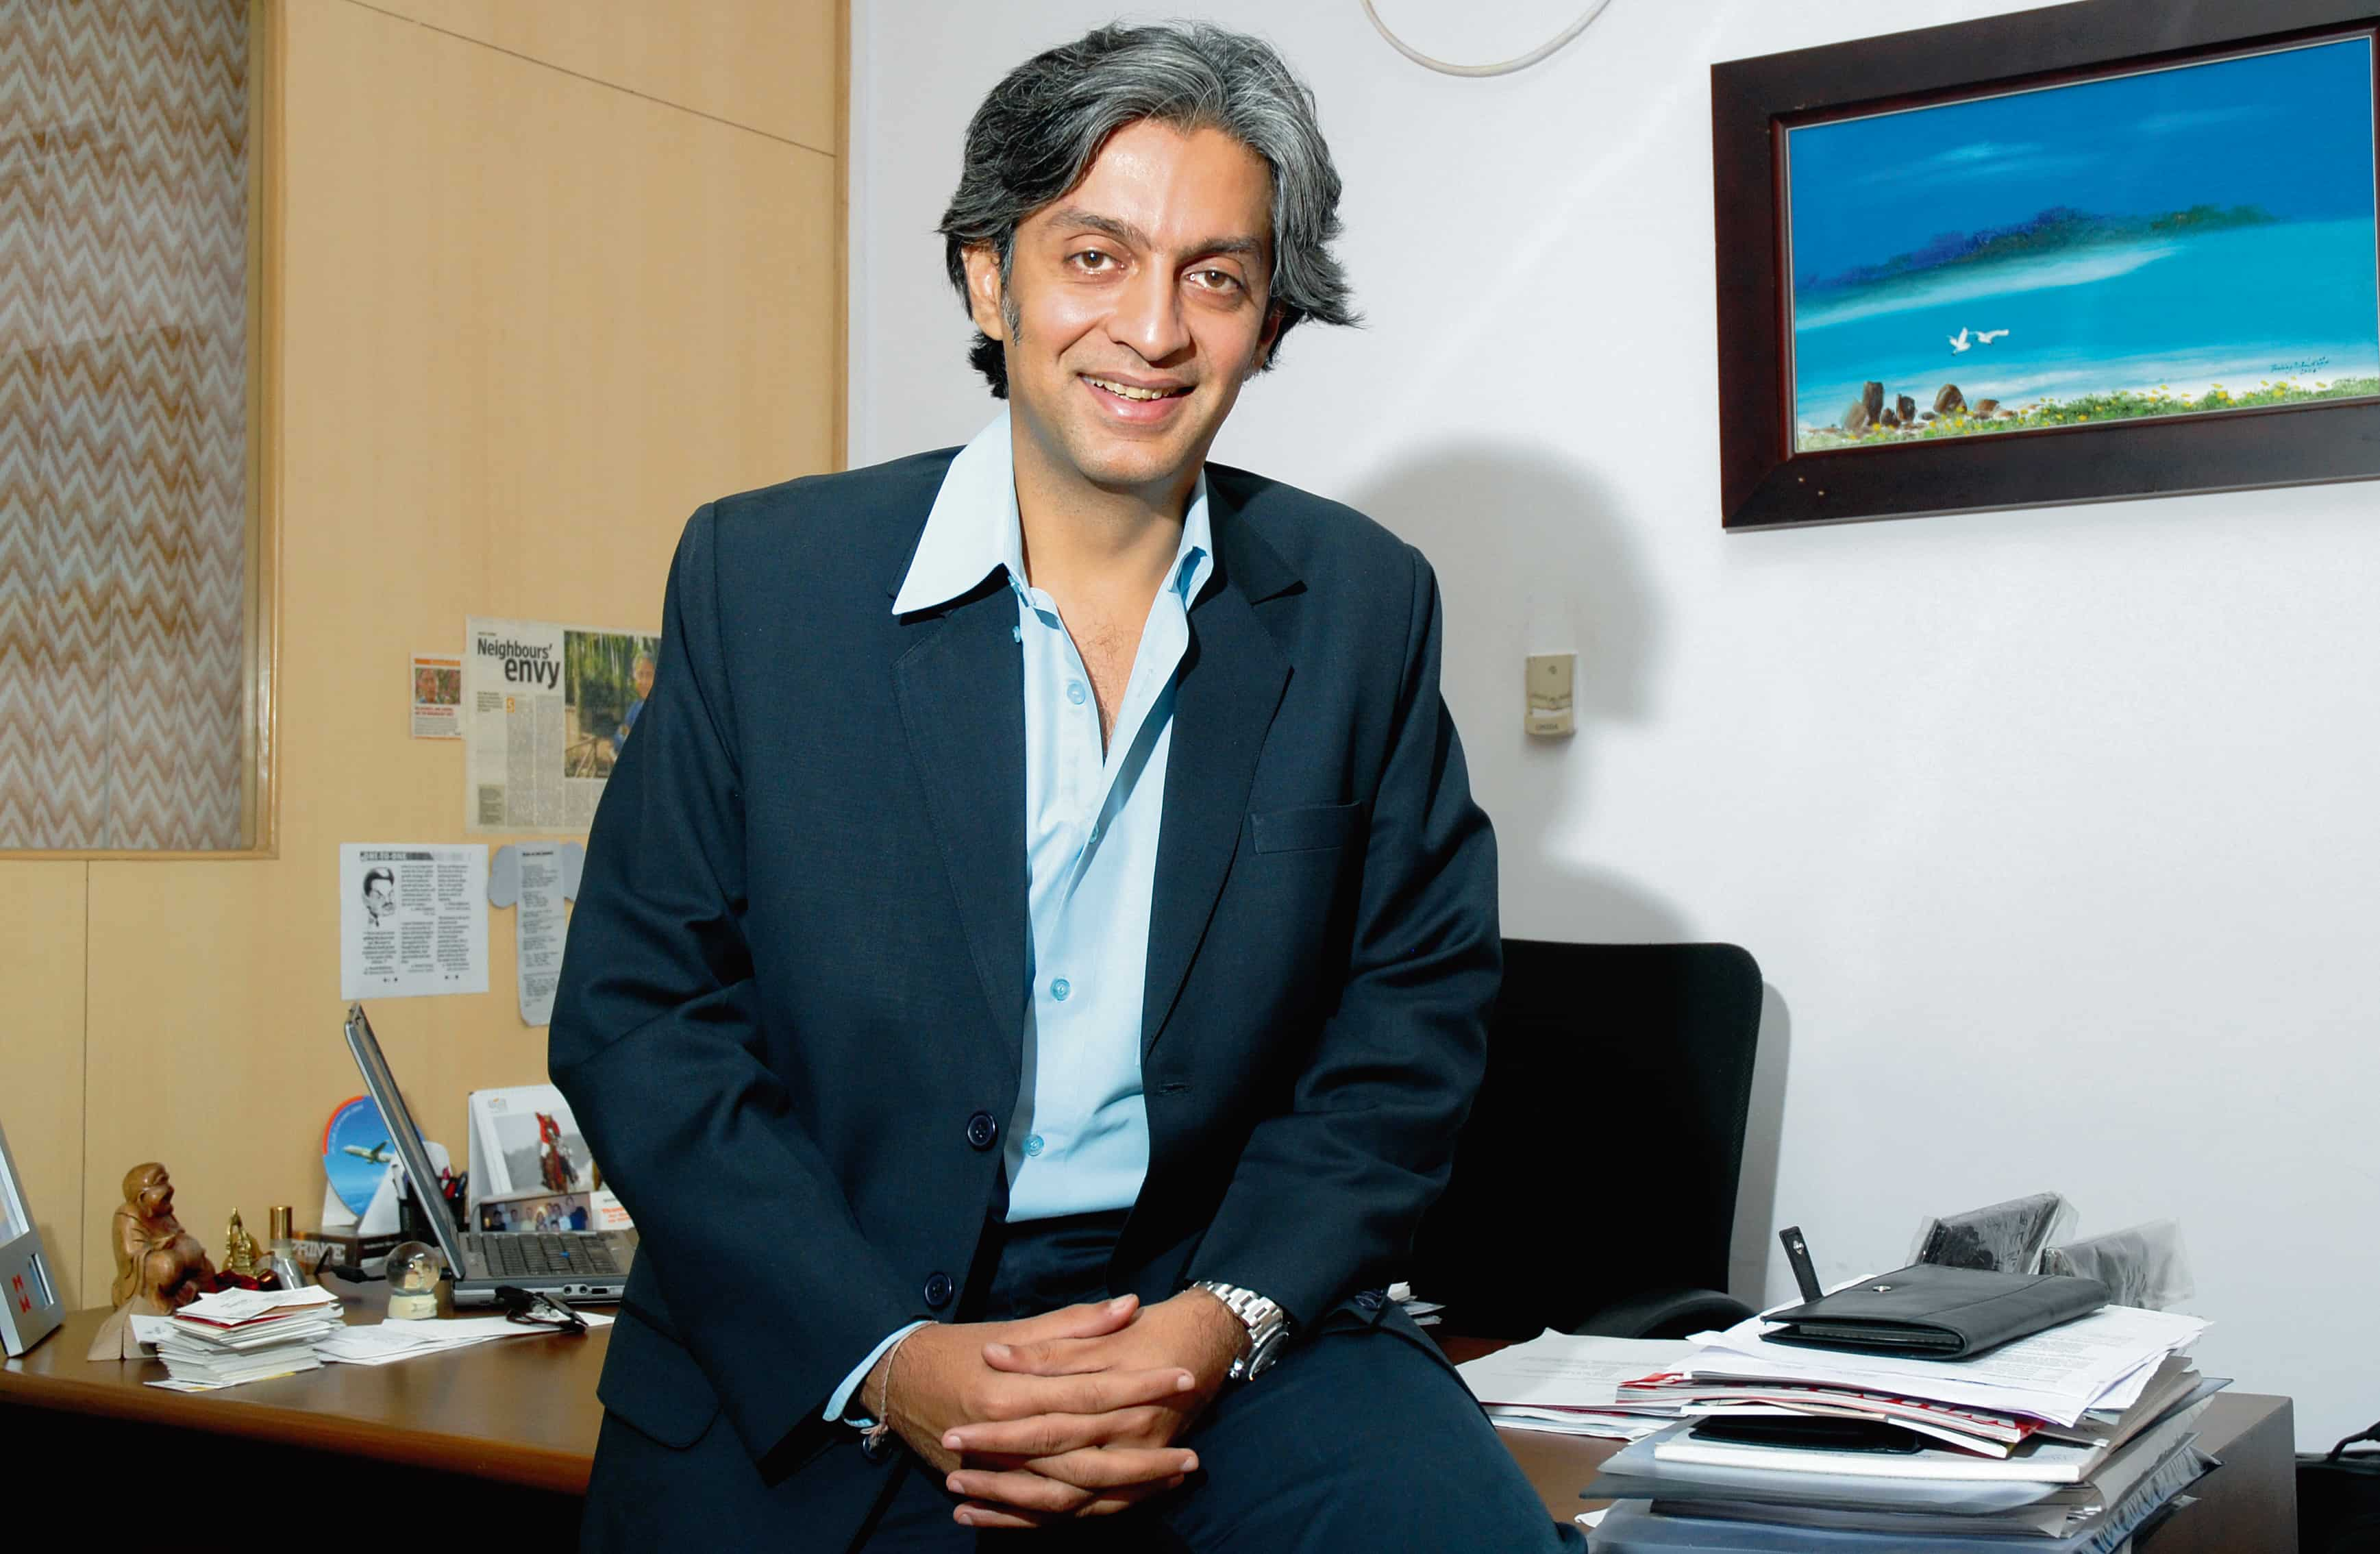 Kae expects to close the fundraise by the end of this fiscal, said Sasha Mirchandani, founder and MD